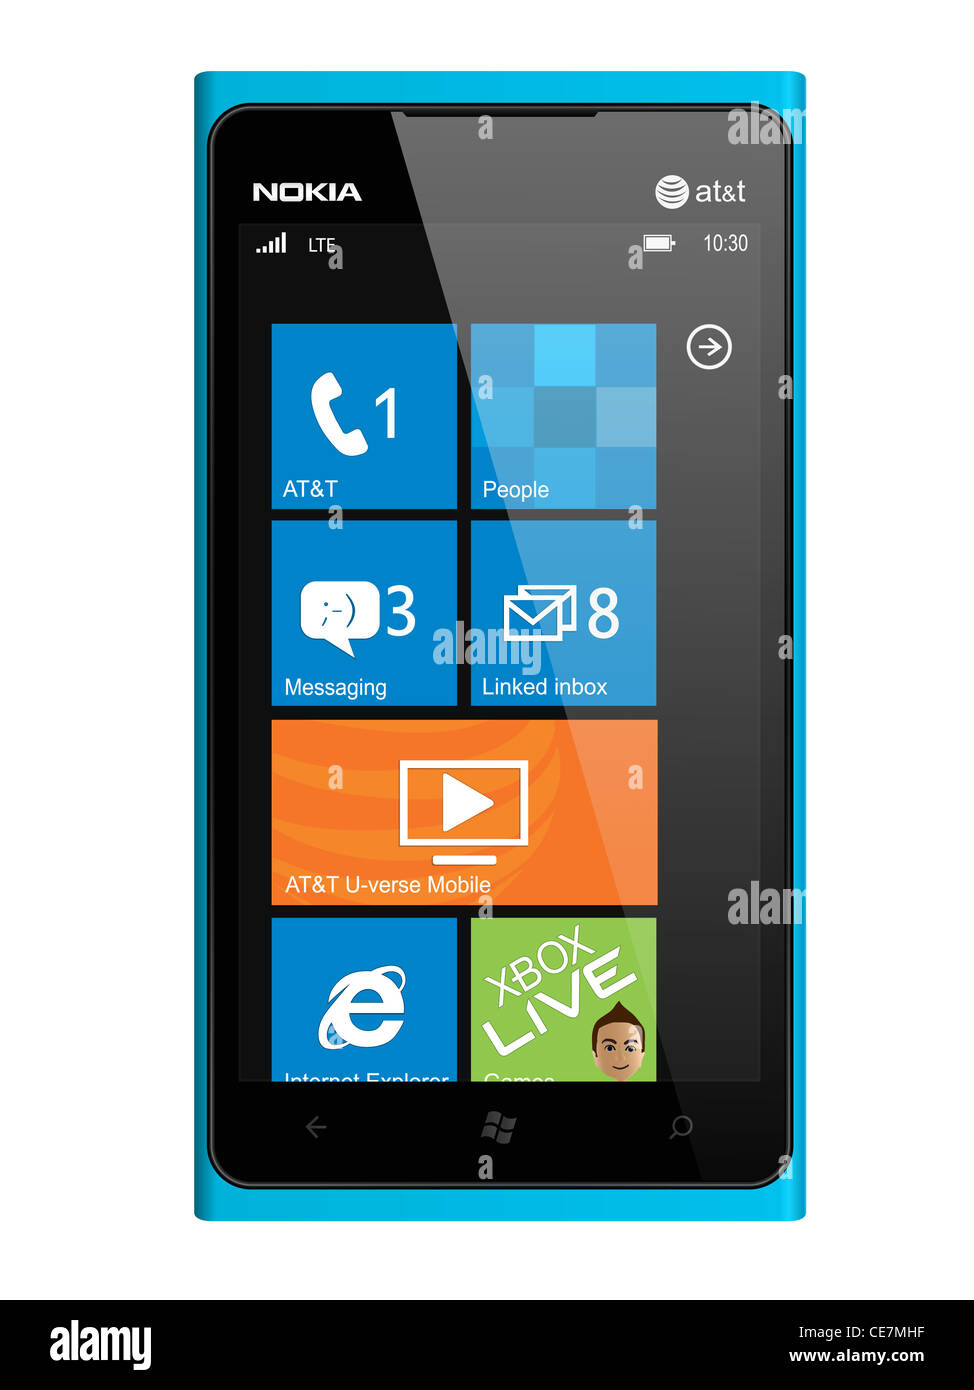 New Nokia smartphone design in blue. Featuring Windows Phone OS, handsets Lumia 900. - Stock Image